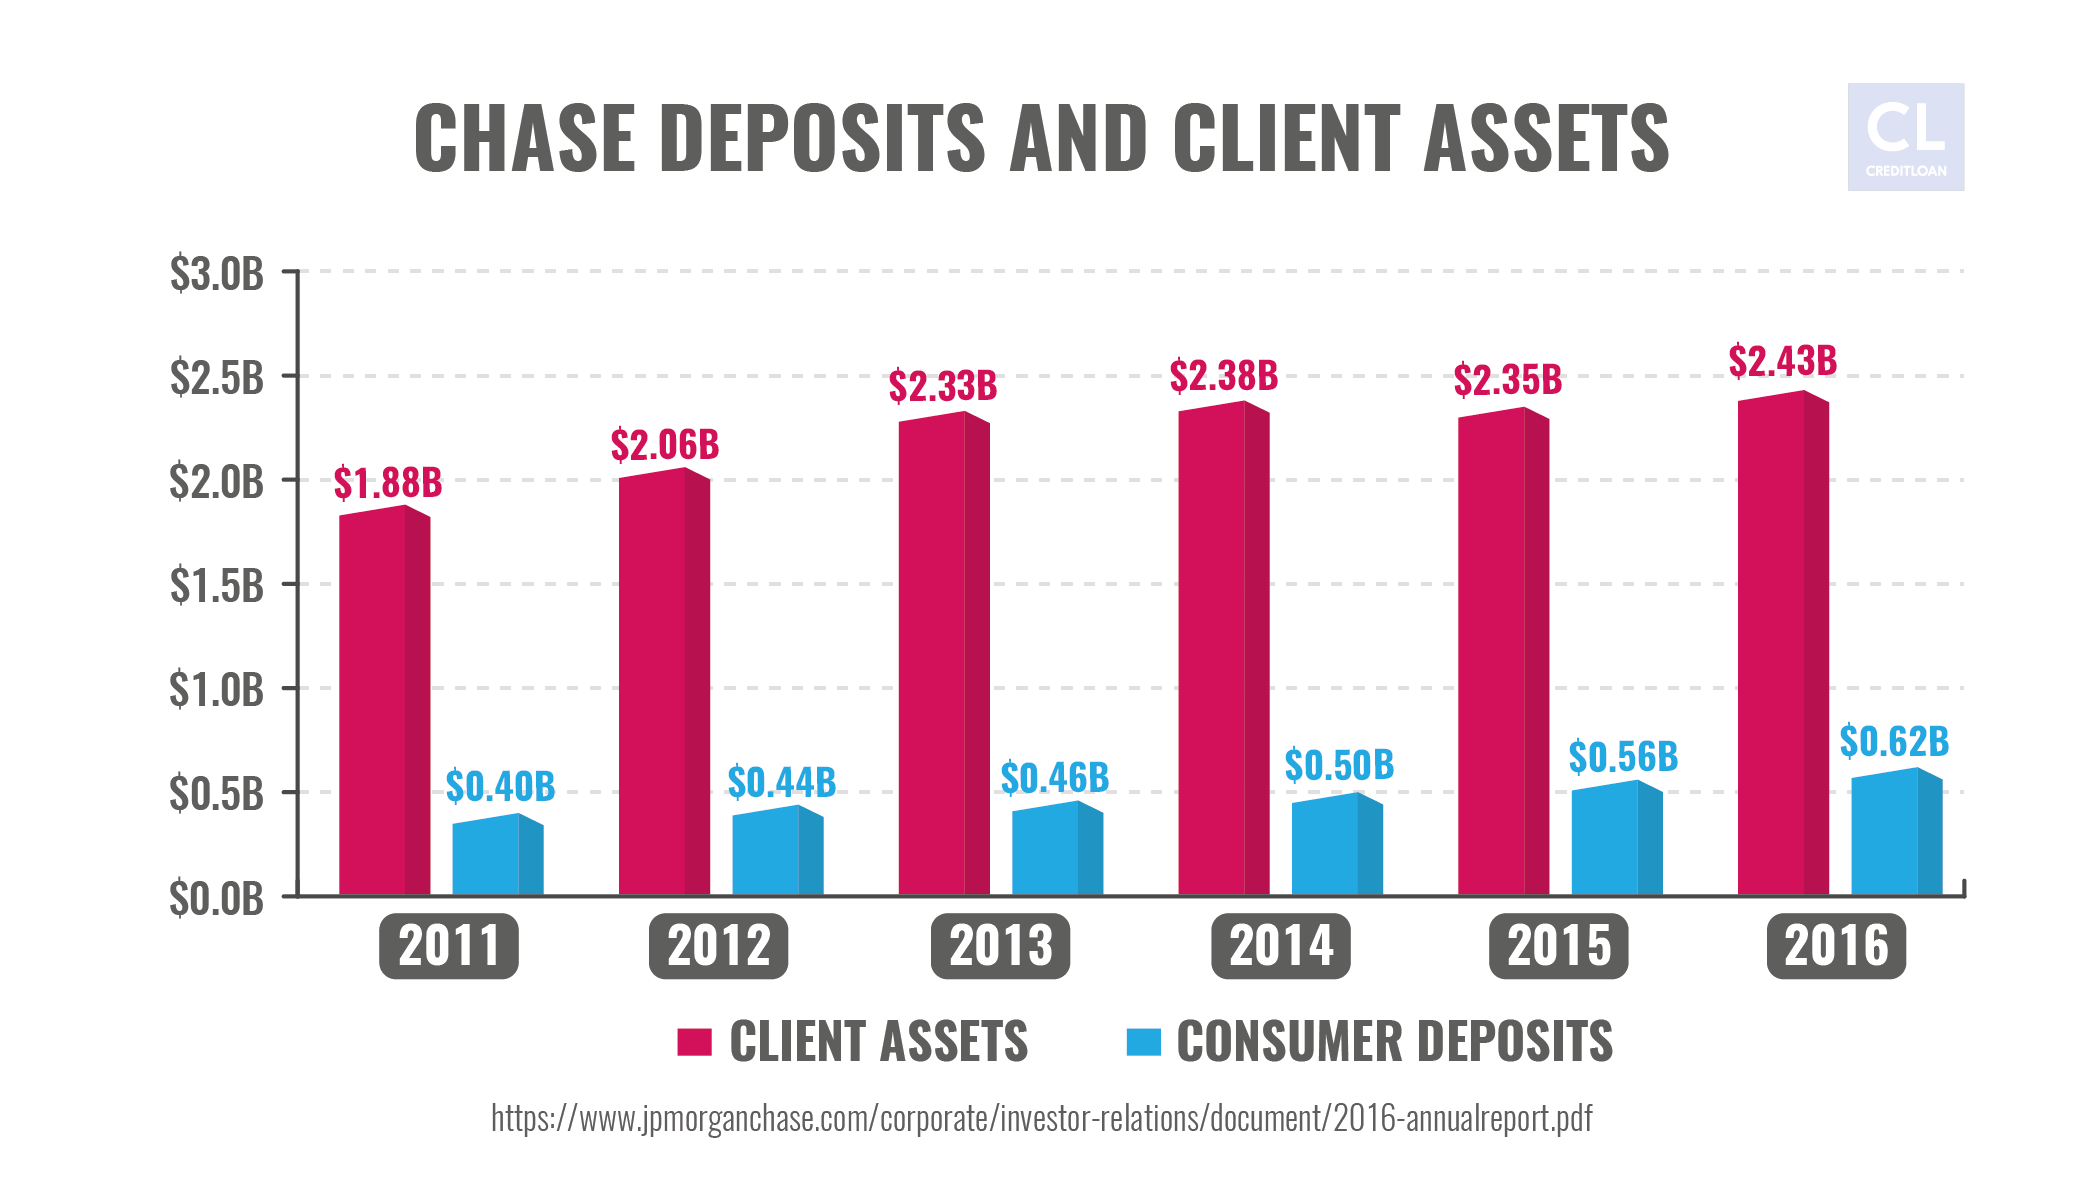 Chase Deposits and Client Assets from 2011-2016